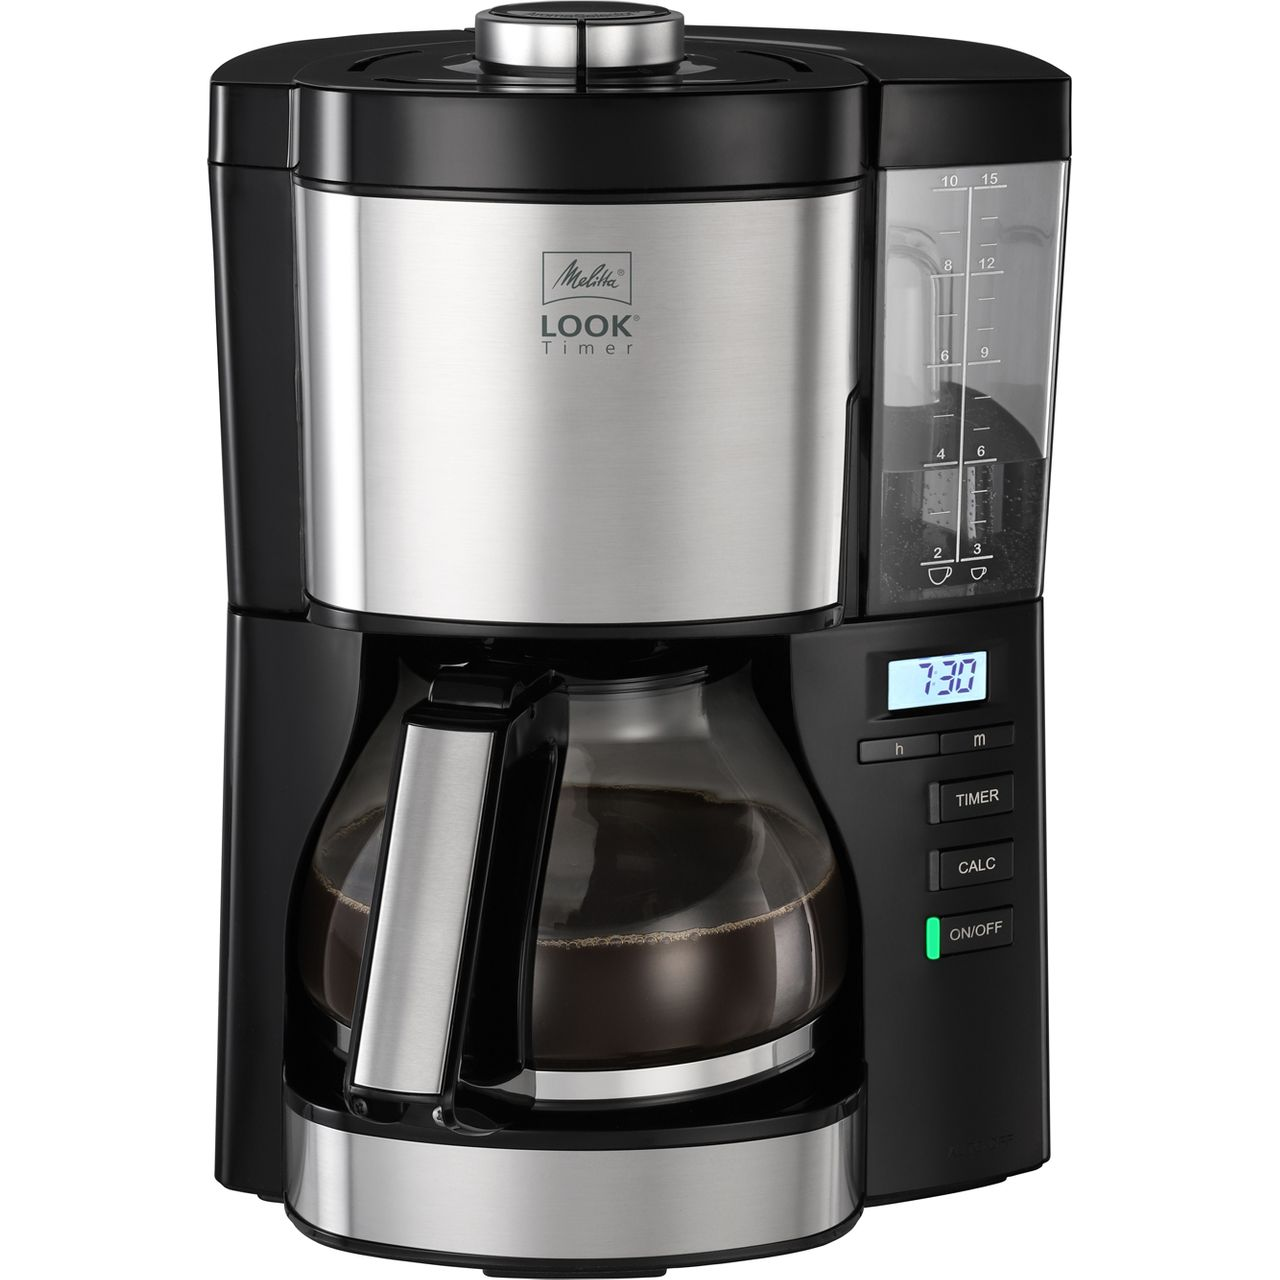 Melitta Look V Timer Black 1025 08 6766591 Filter Coffee Machine With Timer Black Stainless Steel